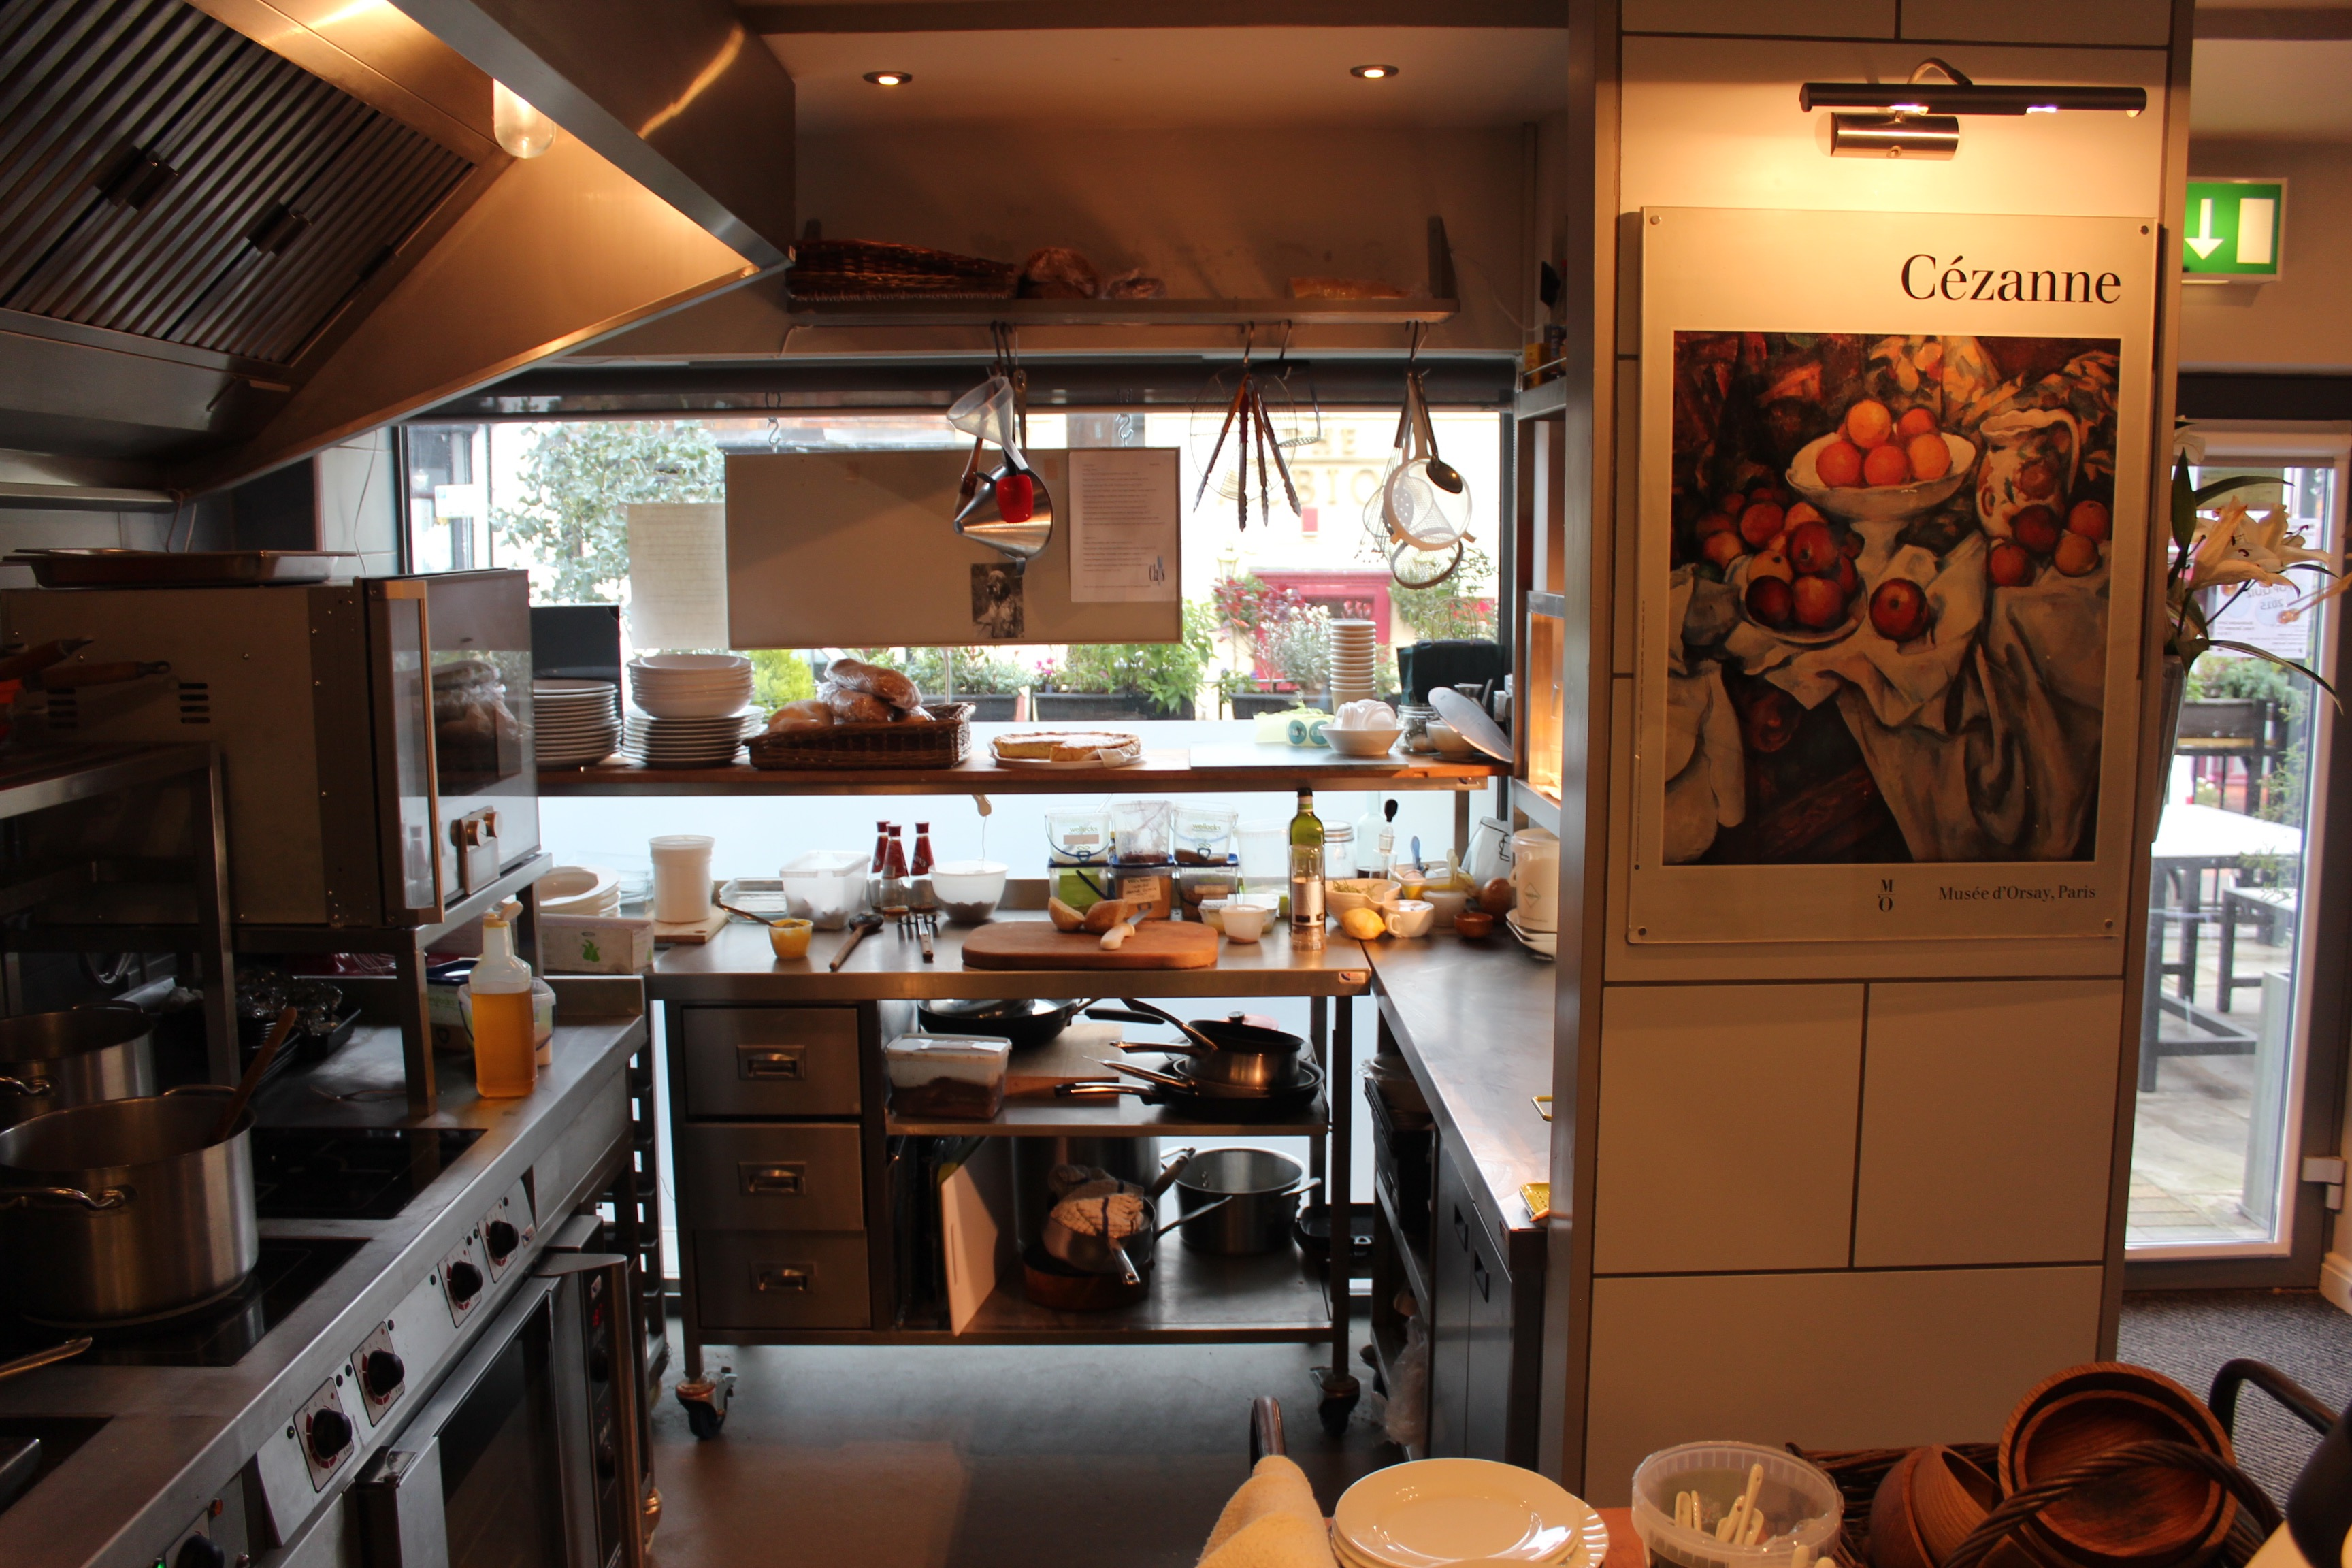 Clays @ home – a new collection and delivery food service